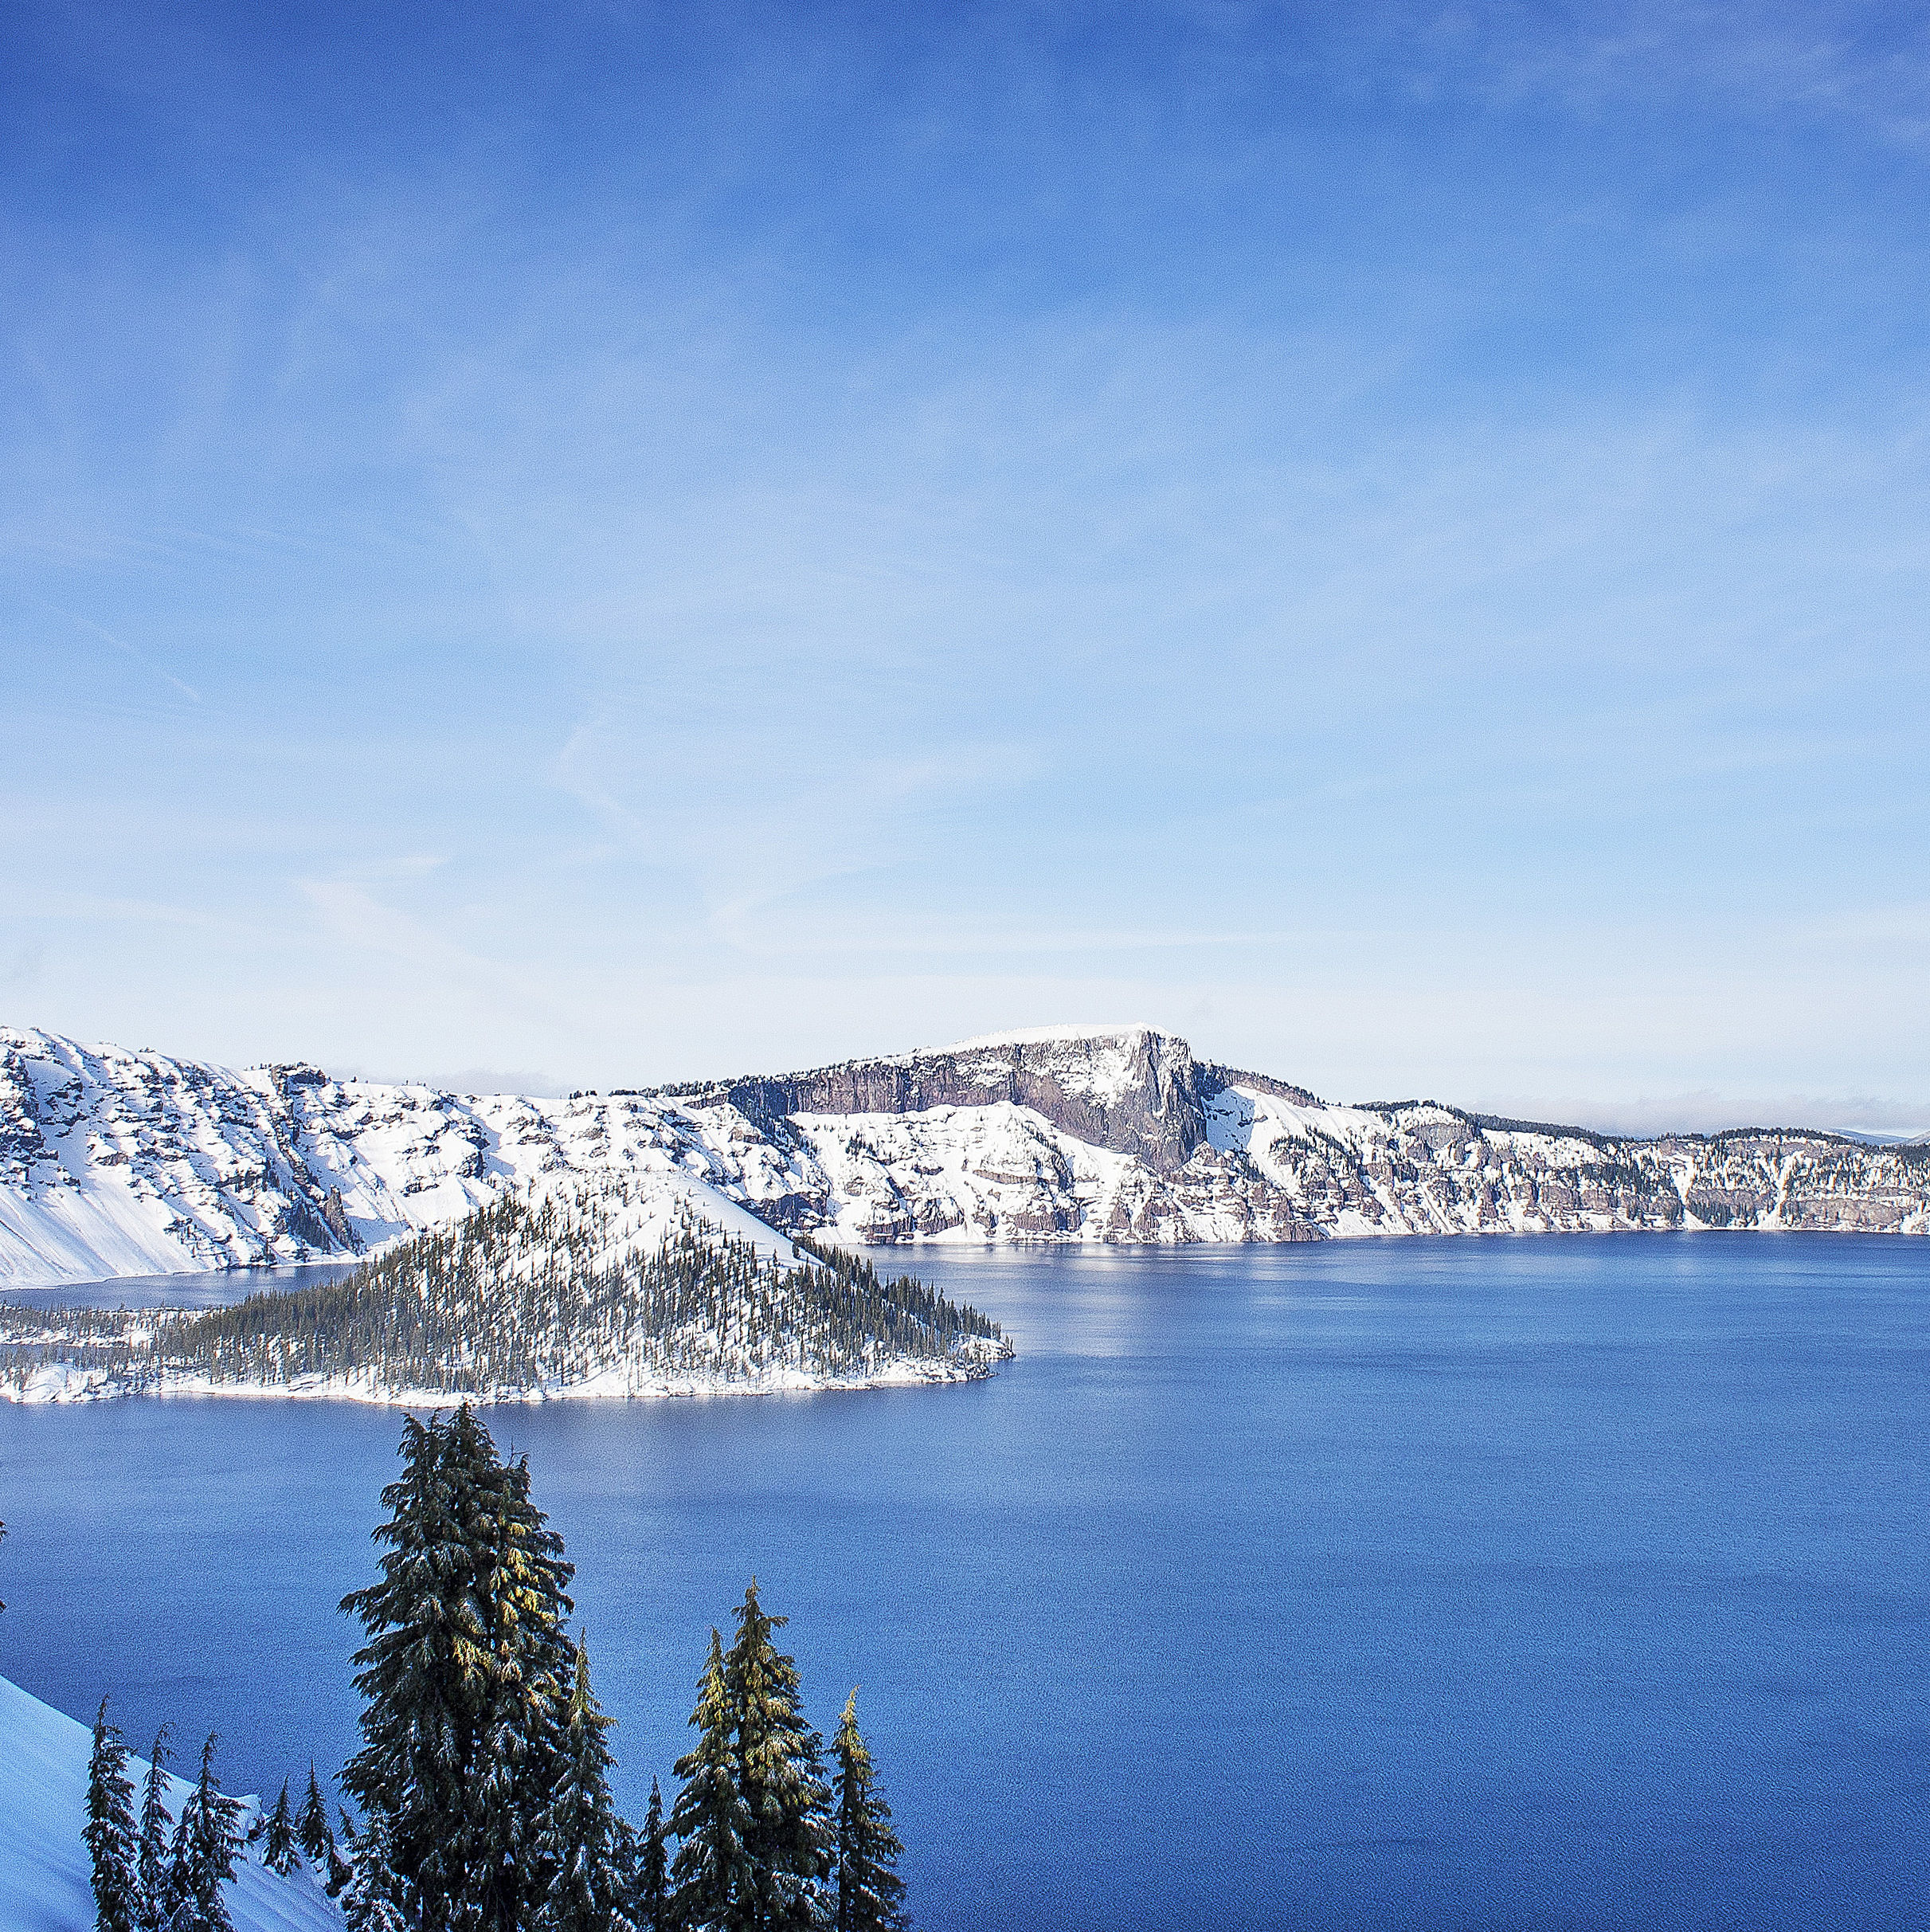 Crater lake winter kihtqv